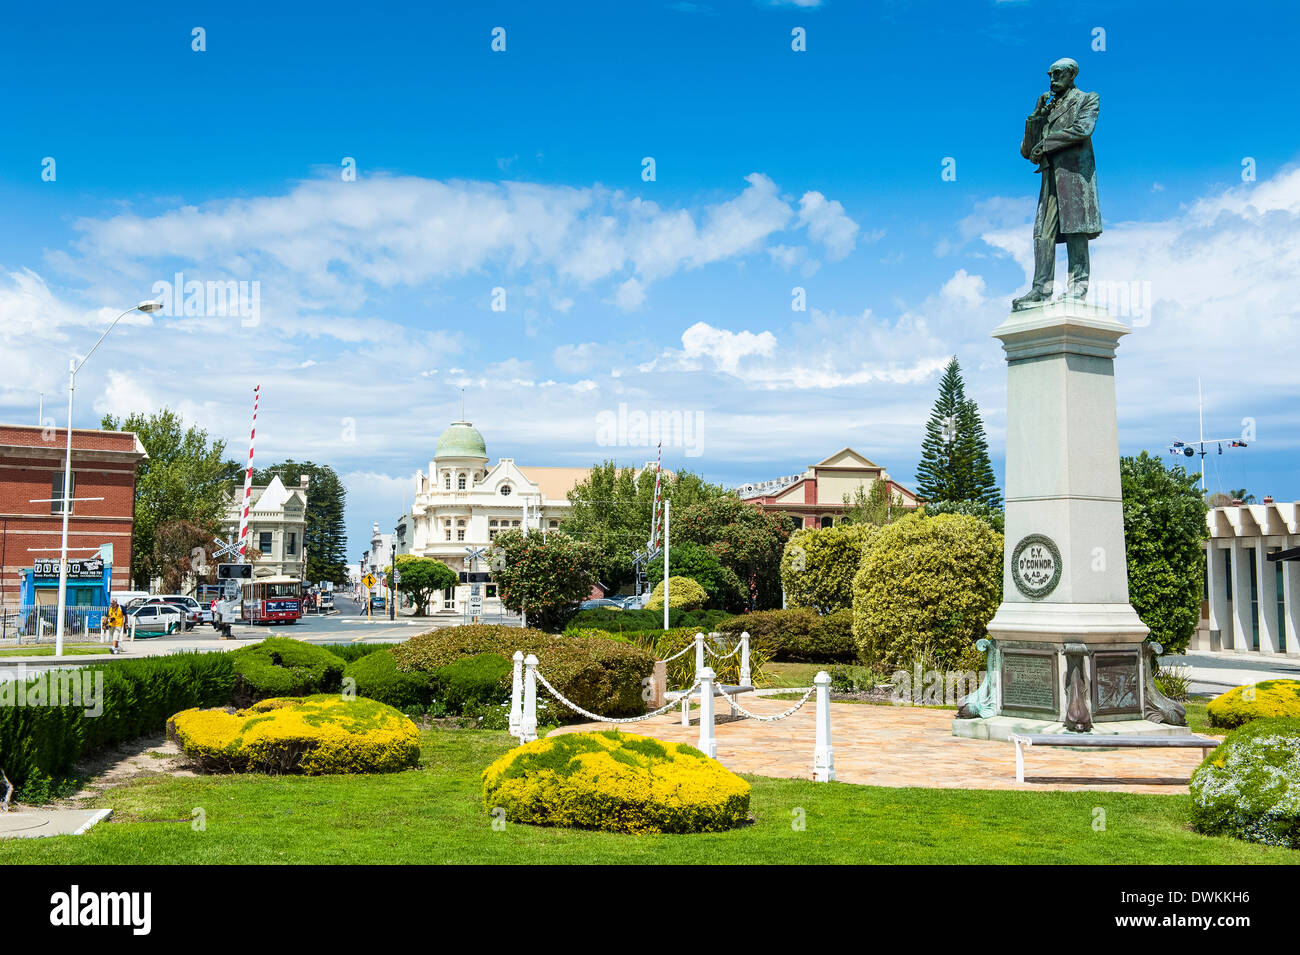 Statue of C. Y. O'Connor in the port of Fremantle, Western Australia, Australia, Pacific - Stock Image